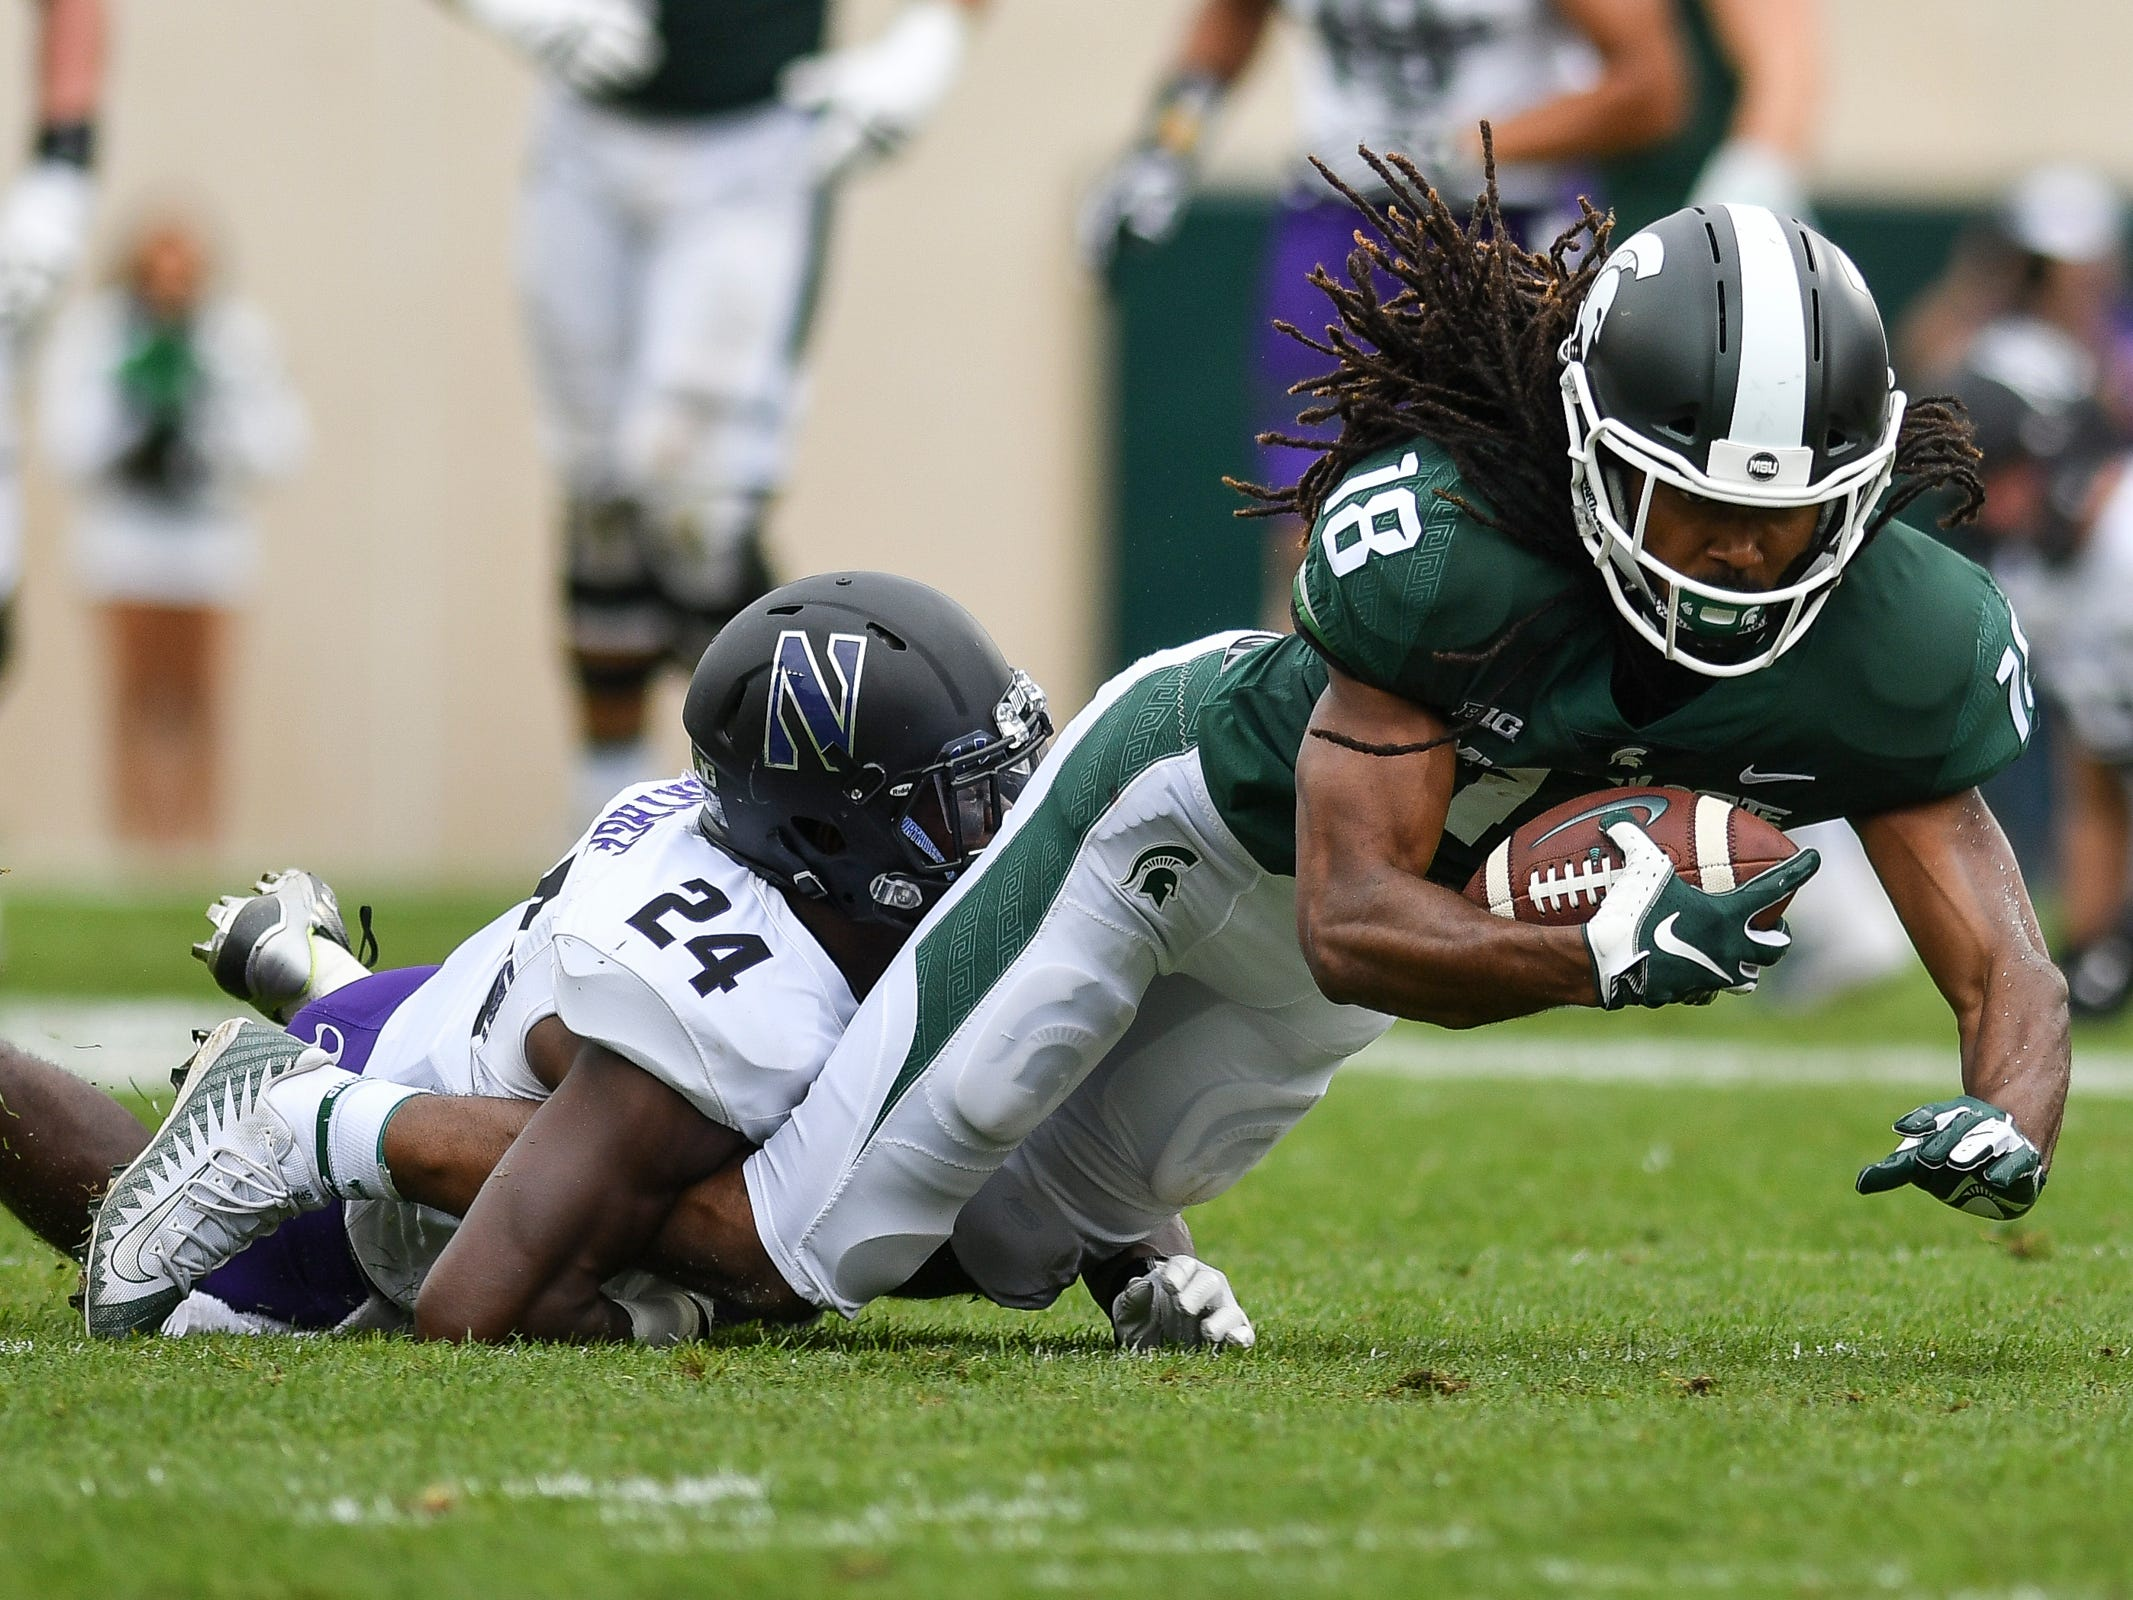 MSU's Felton Davis gets tackled by Northwestern's Monte Hartage, Sat., Oct. 6, 2018.